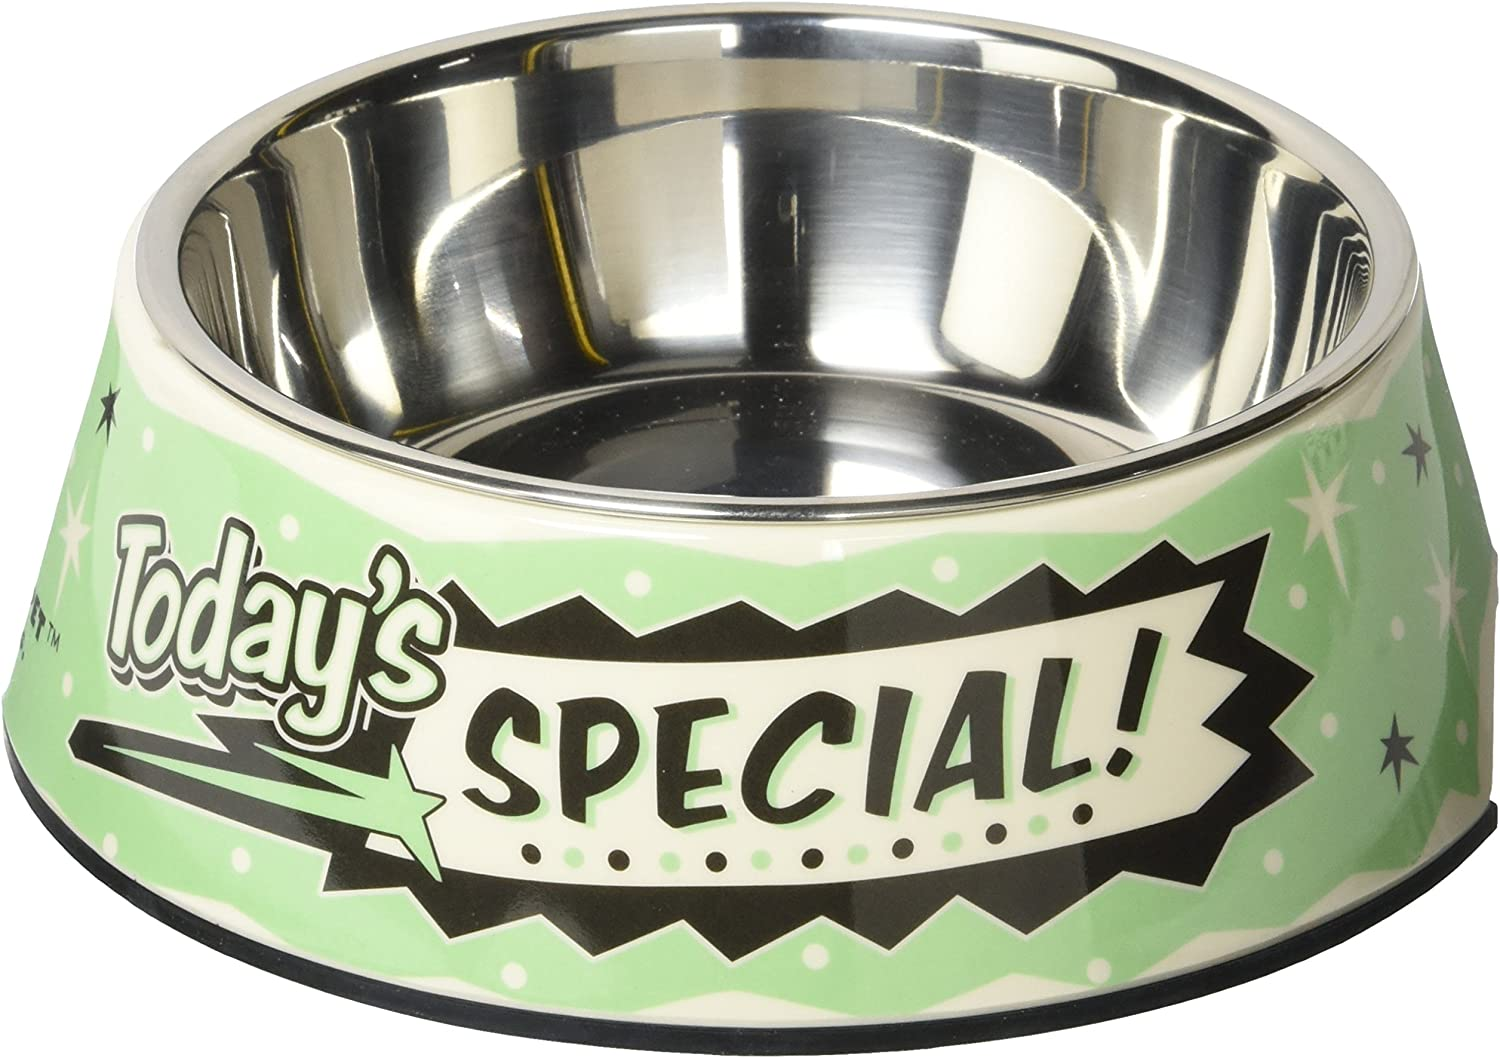 Punchline Pet 'Today's Special' Retro Melamine Dog Bowl with Stainless Steel Dog Bowl Insert, 12 oz